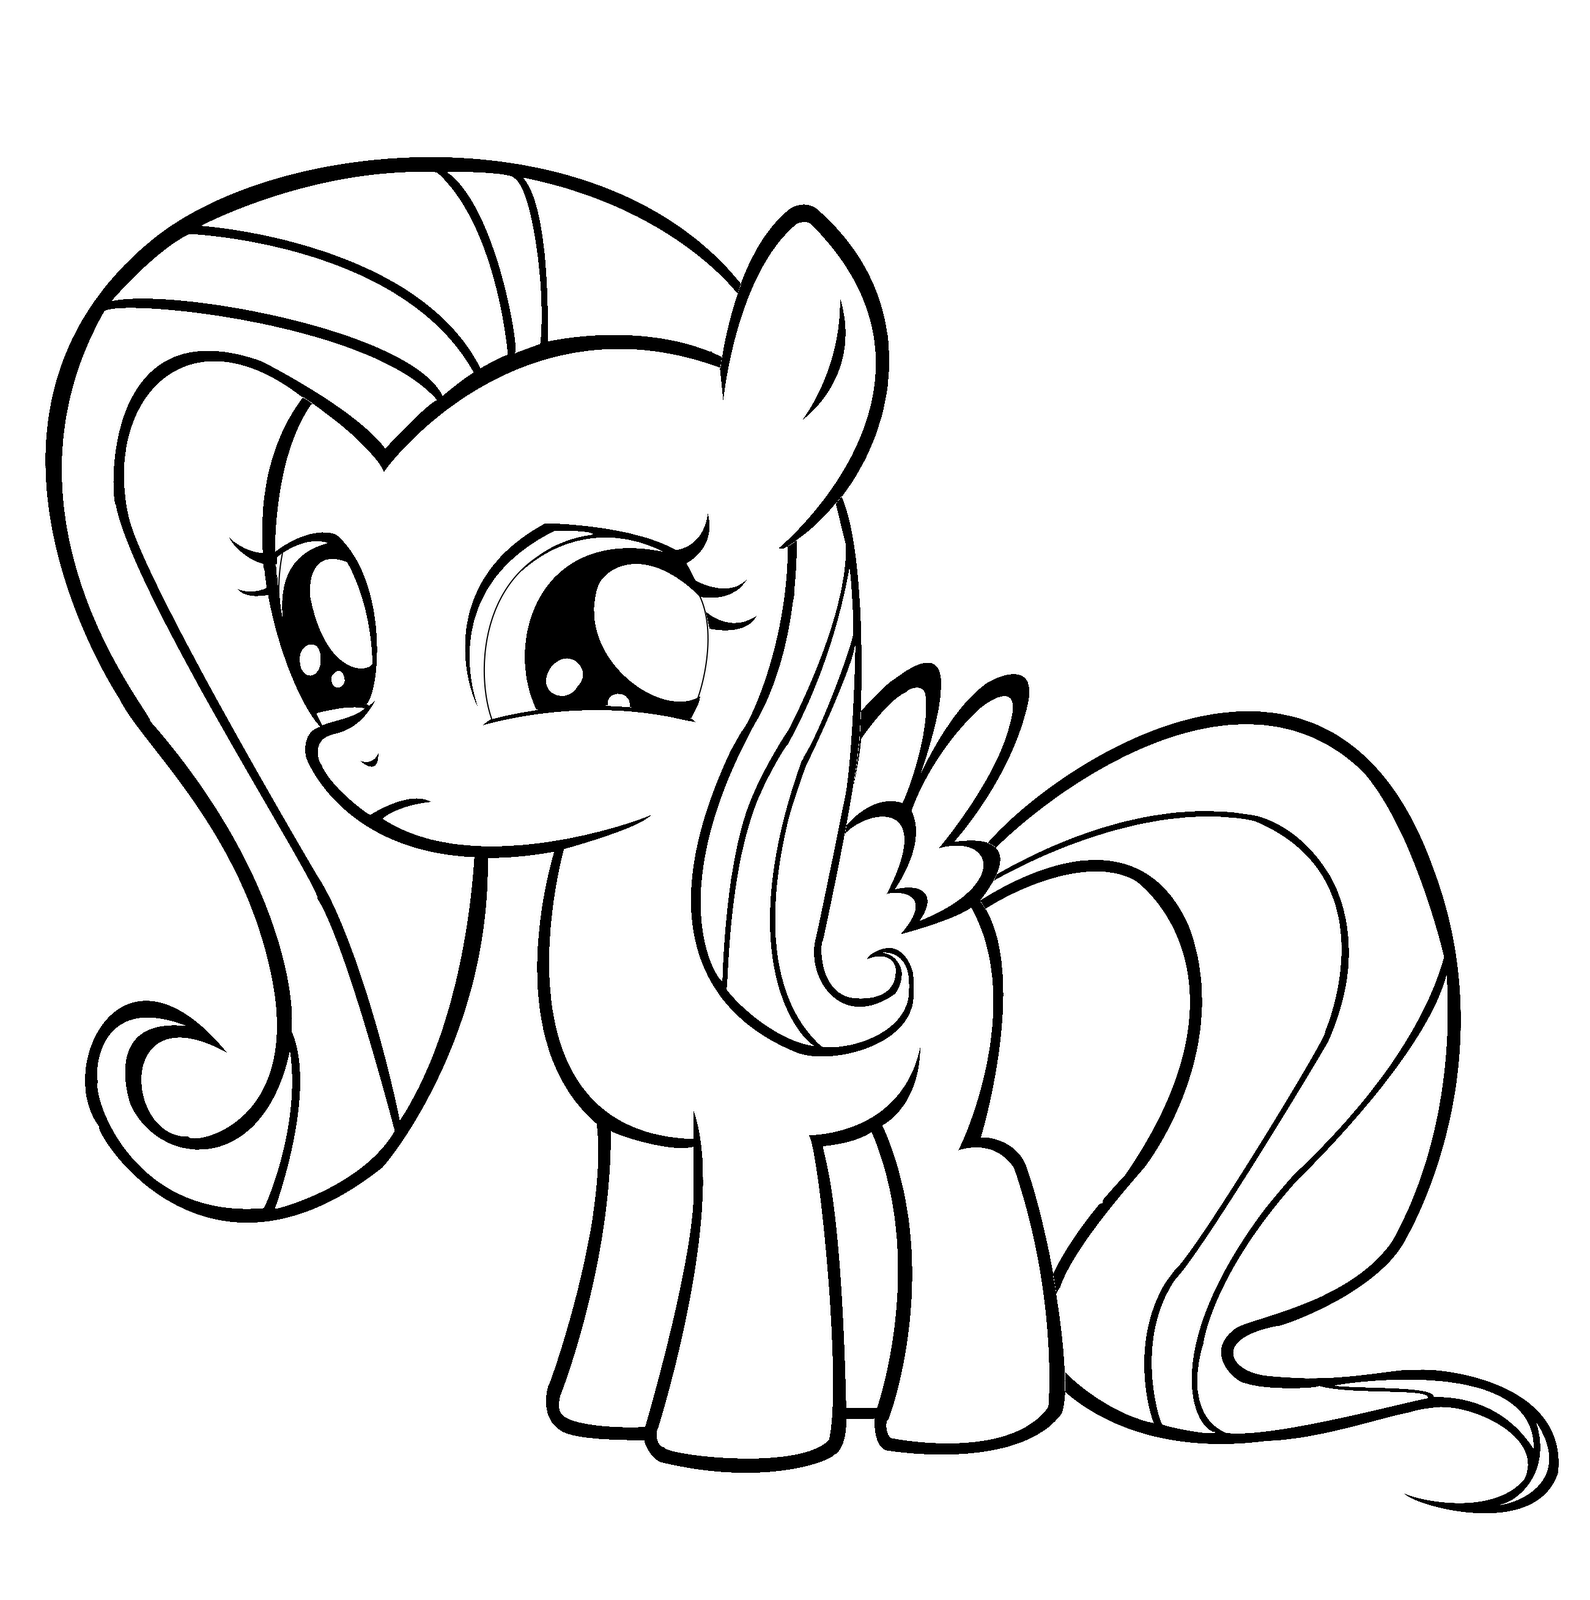 my pony coloring pages my little pony coloring pages friendship is magic team pony coloring my pages